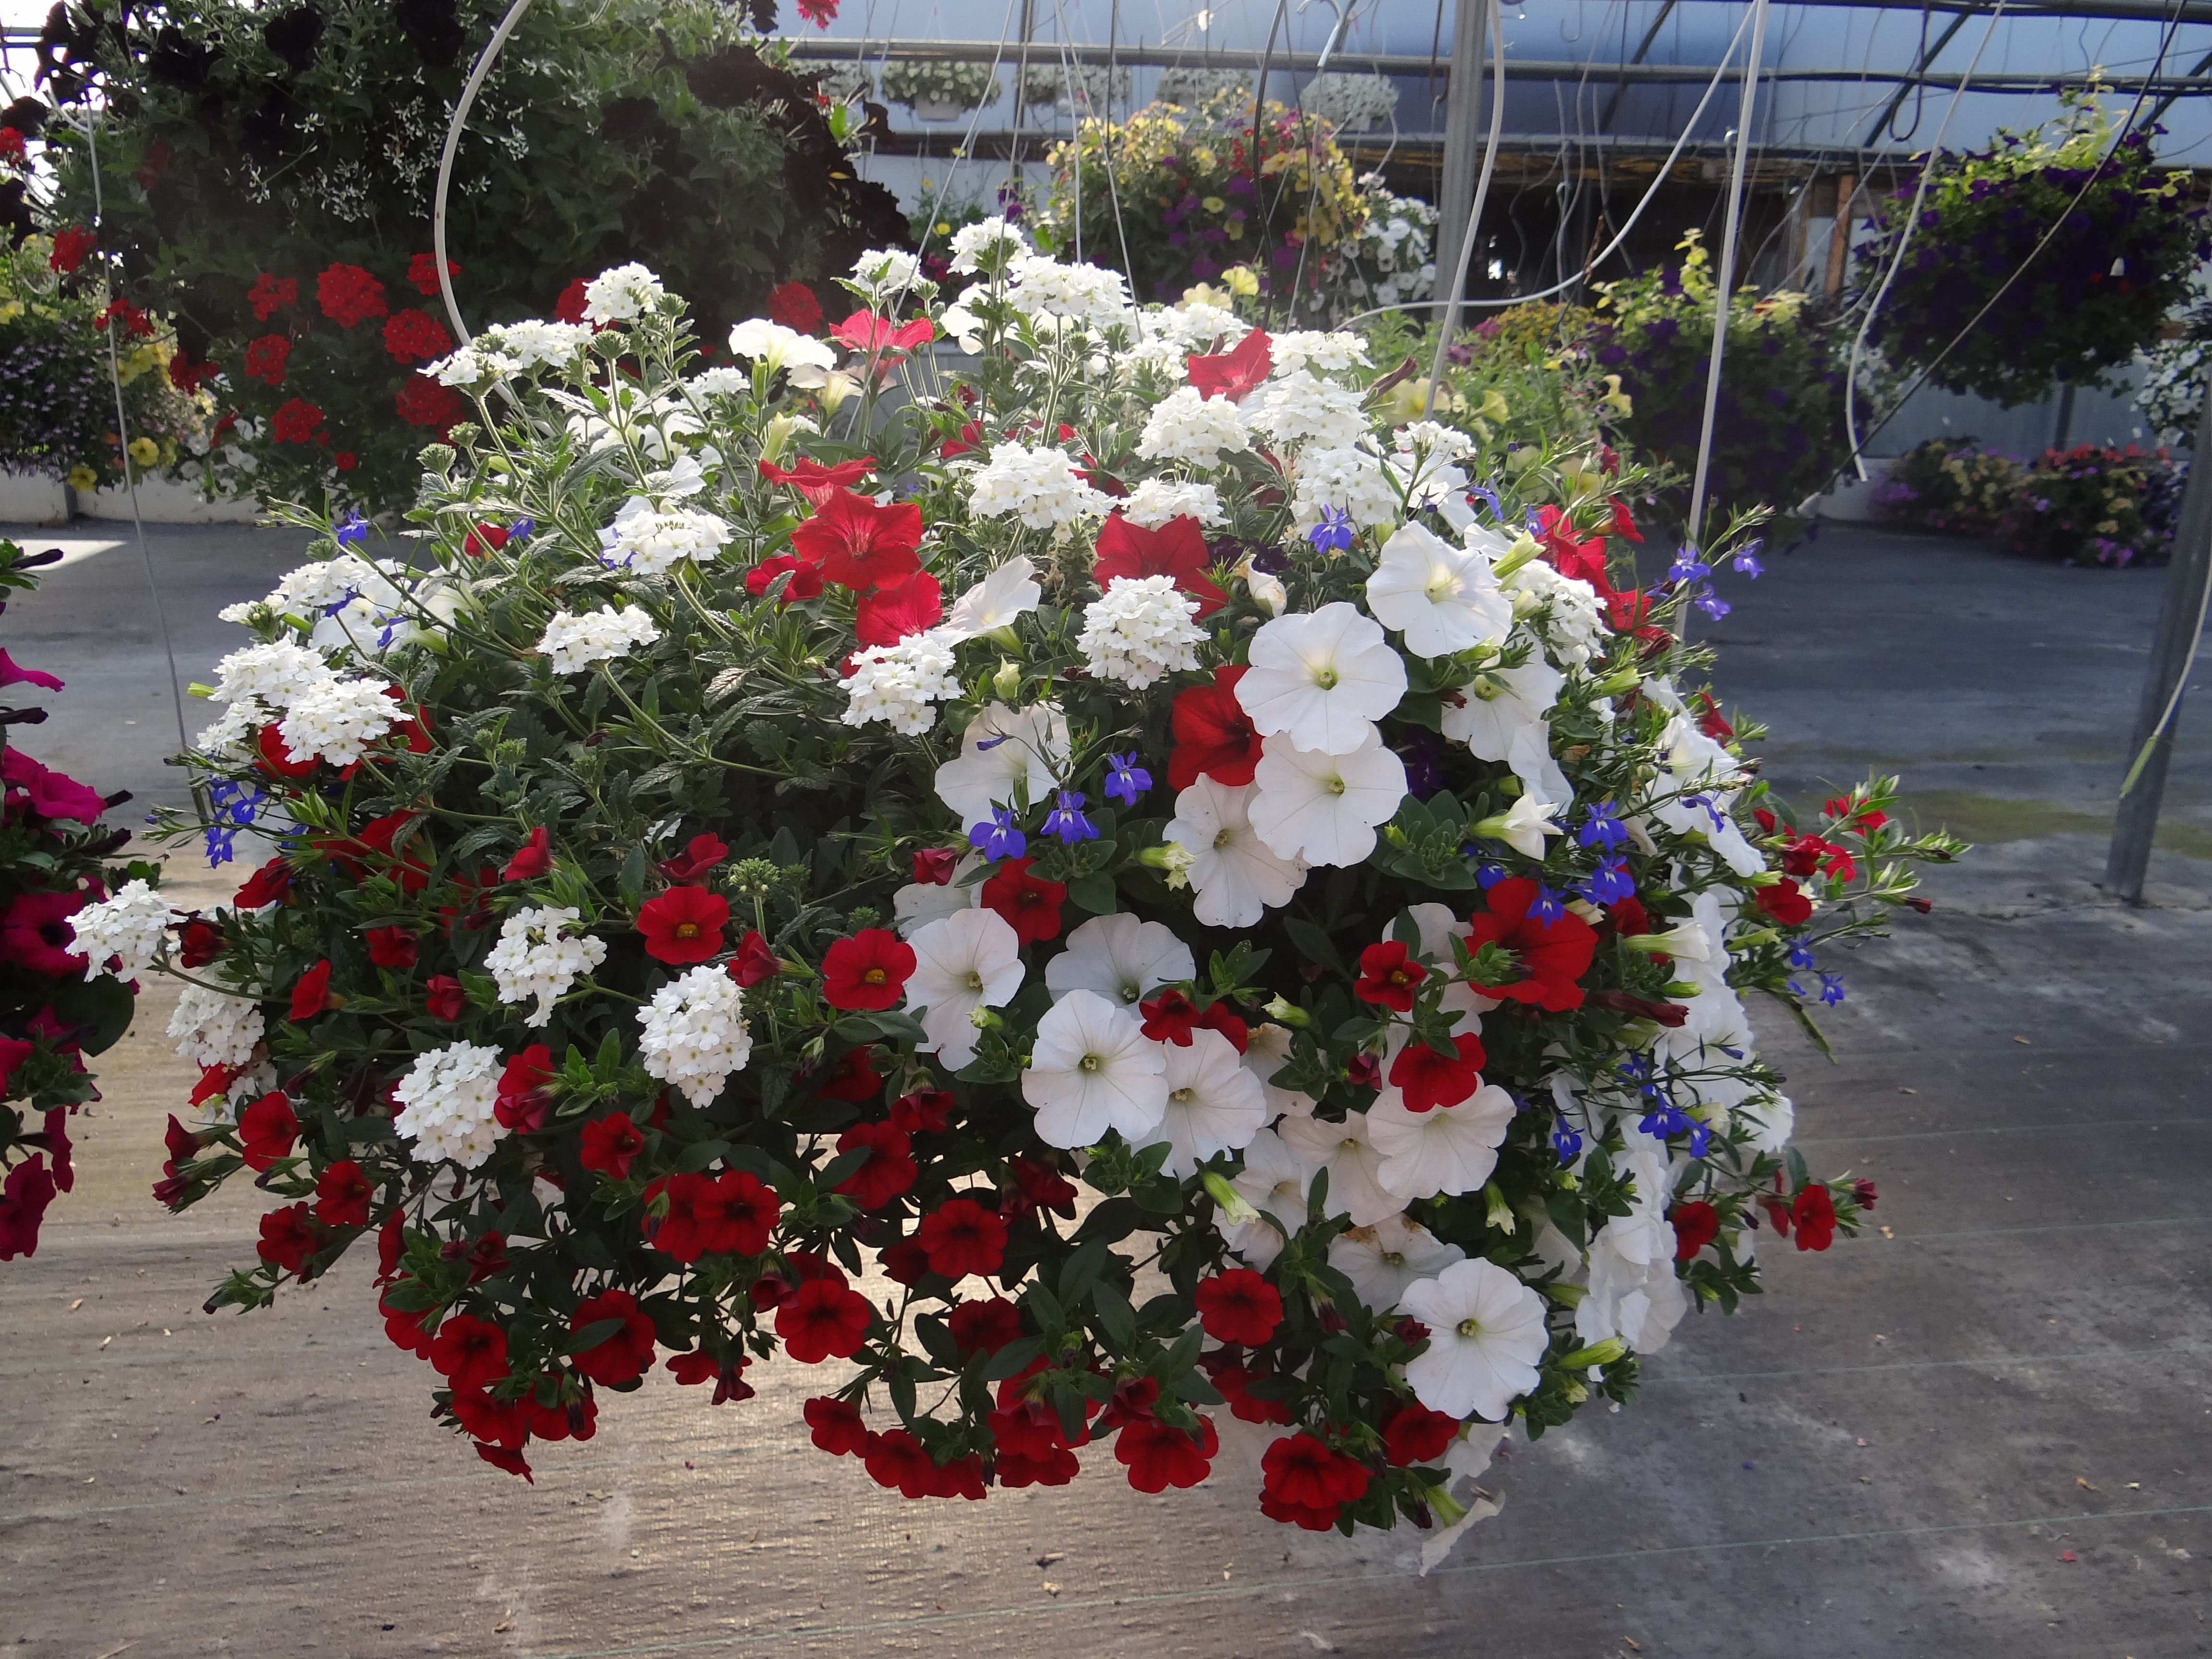 Our large flower baskets are loved by homeowners everywhere. These are available late April through mid-June at Keil's Produce and Greenhouse, just west of Toledo in Swanton.